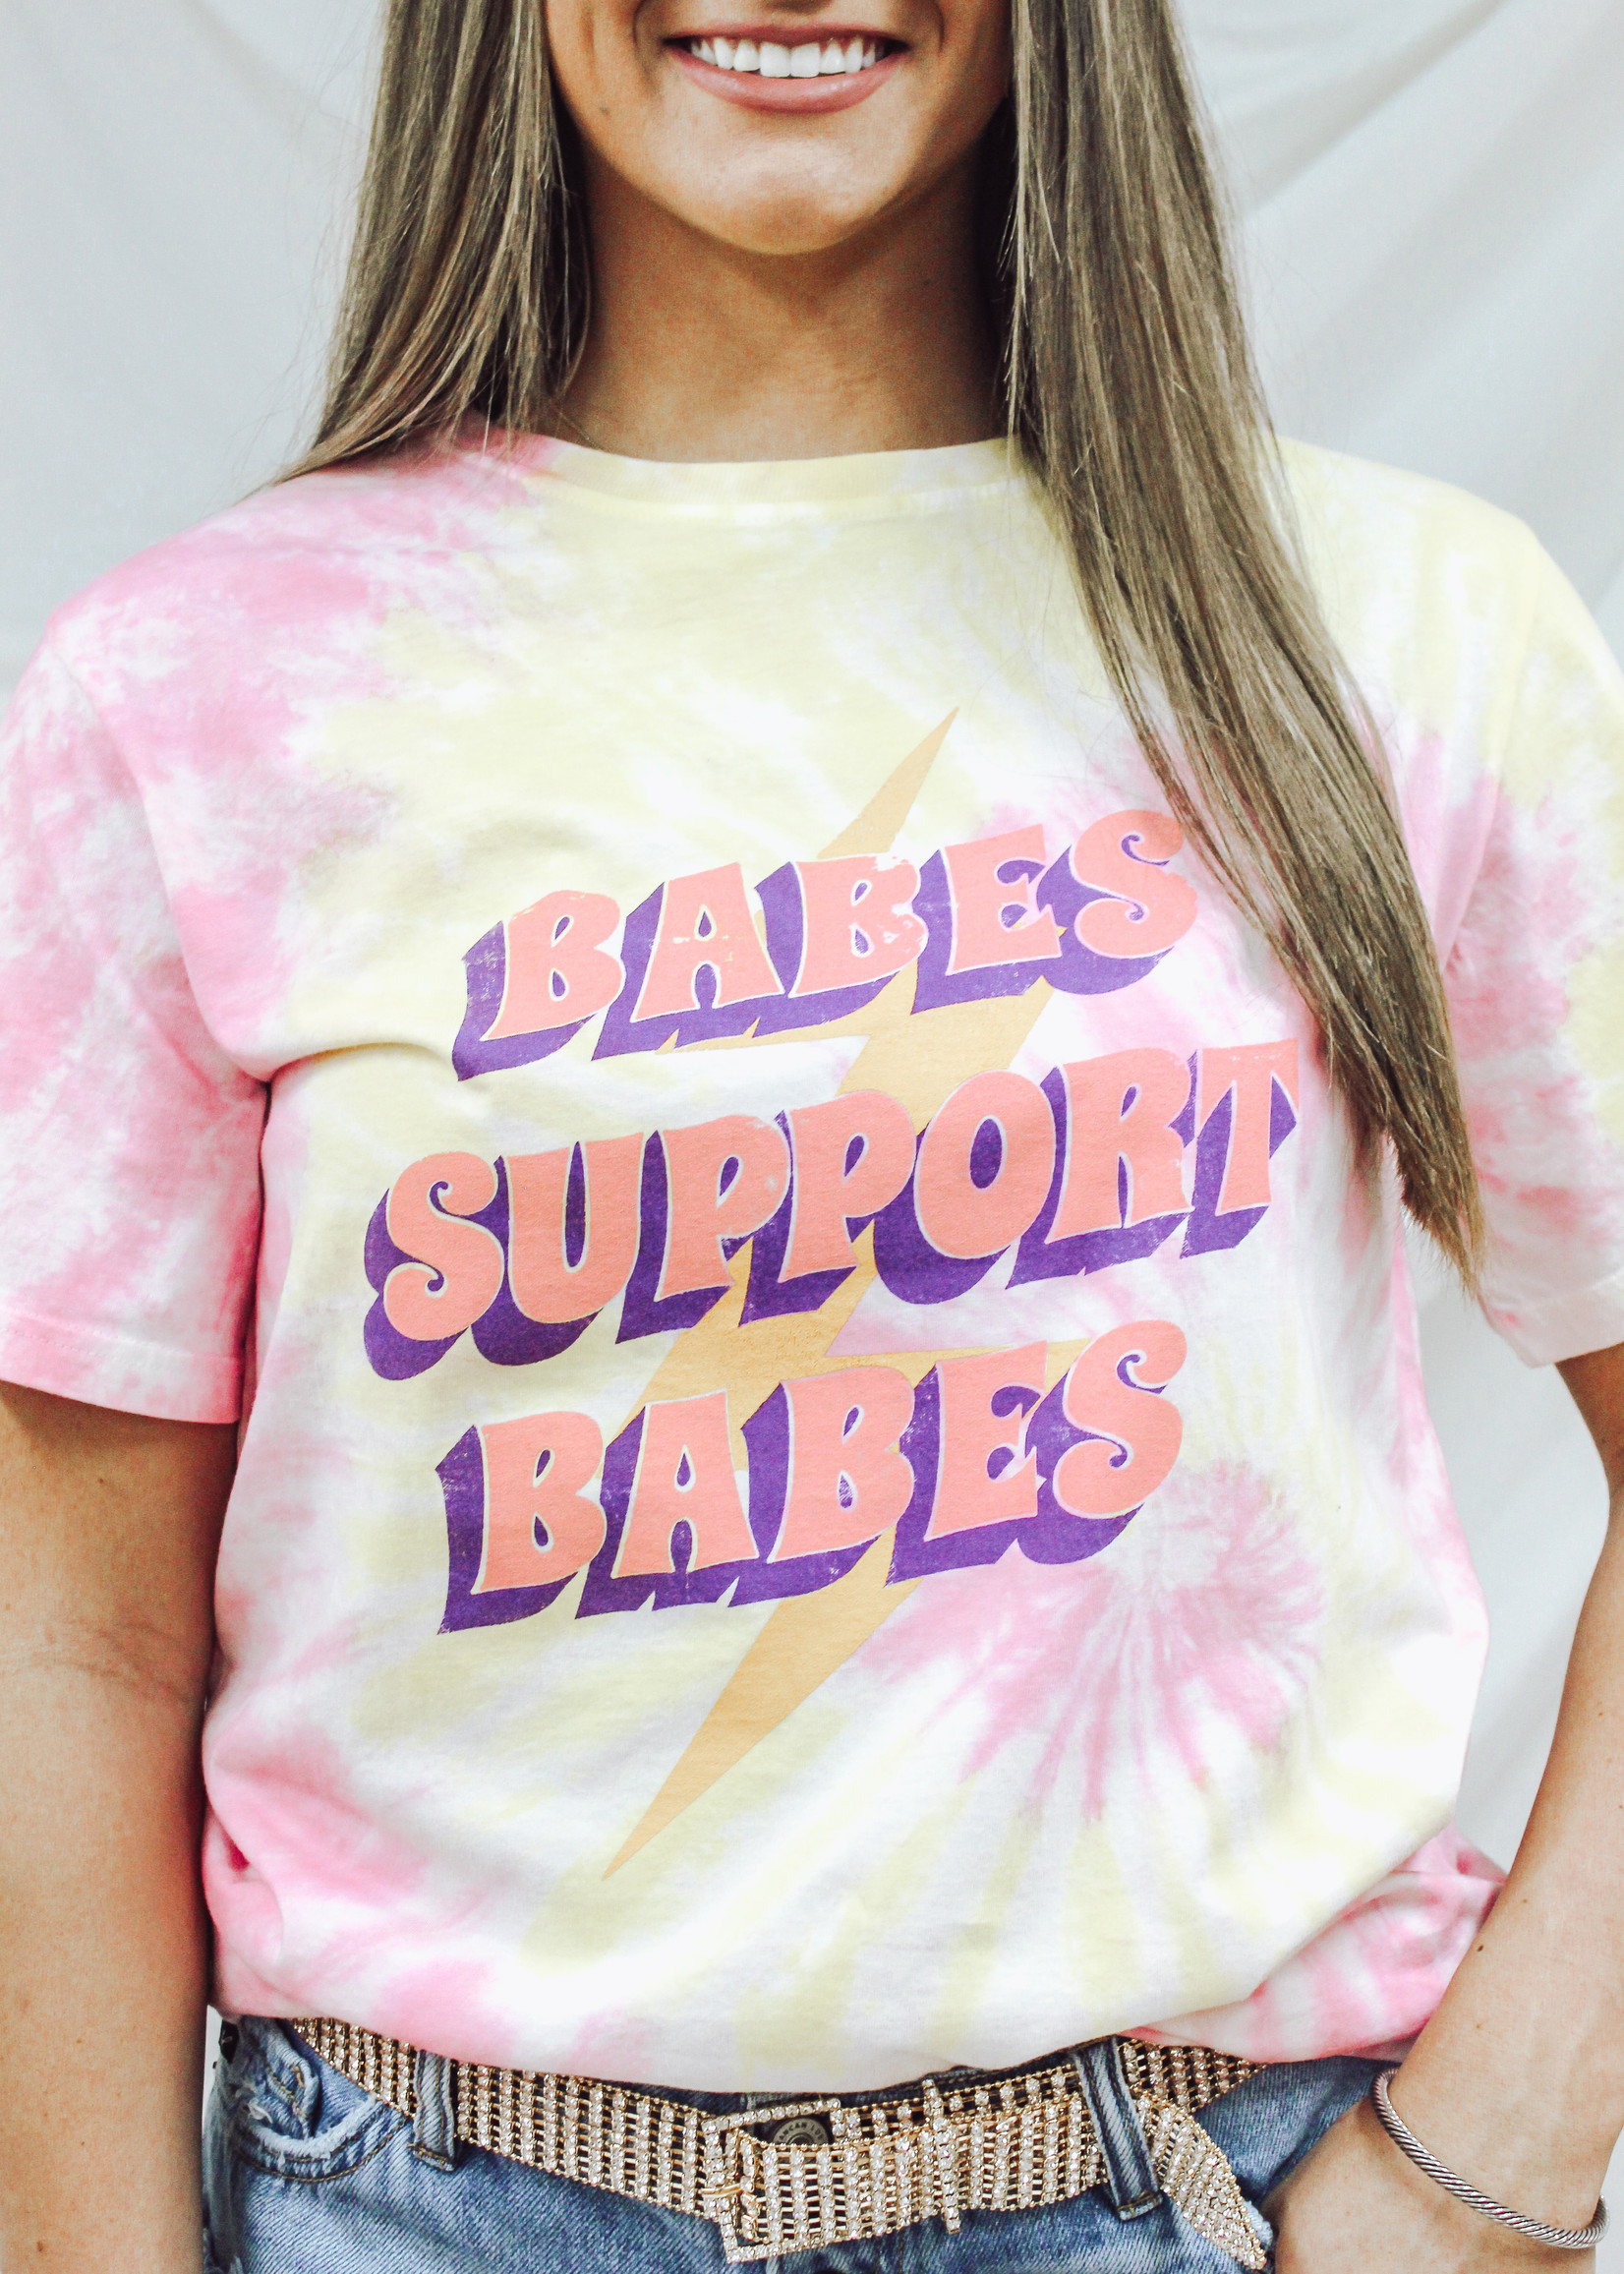 Short Sleeve Babes Support Babes Top